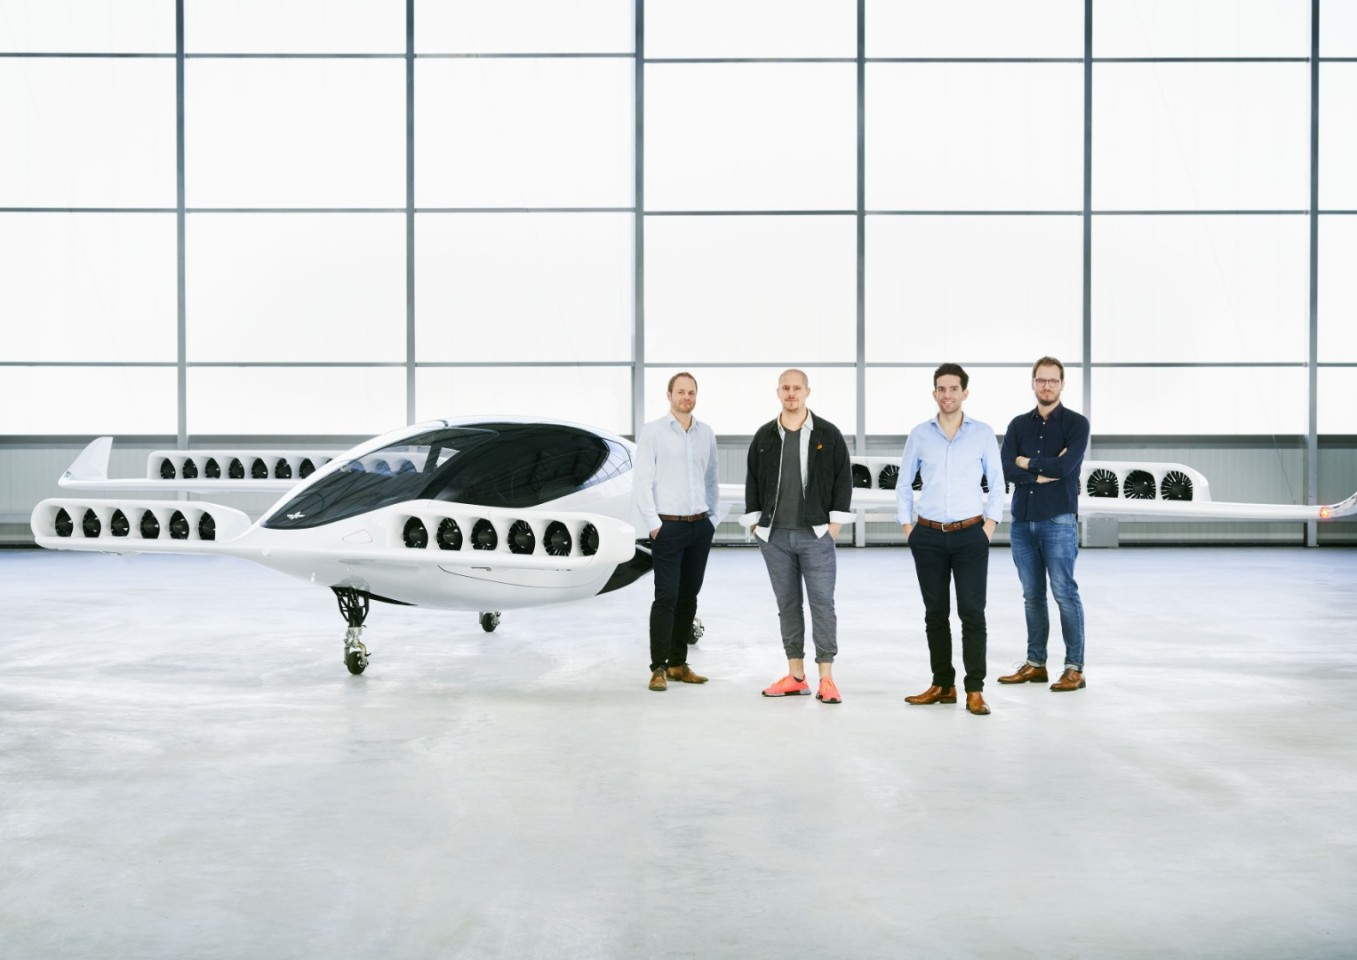 Lilium first emerged in 2016 as an aviation startup with some very lofty ambitions